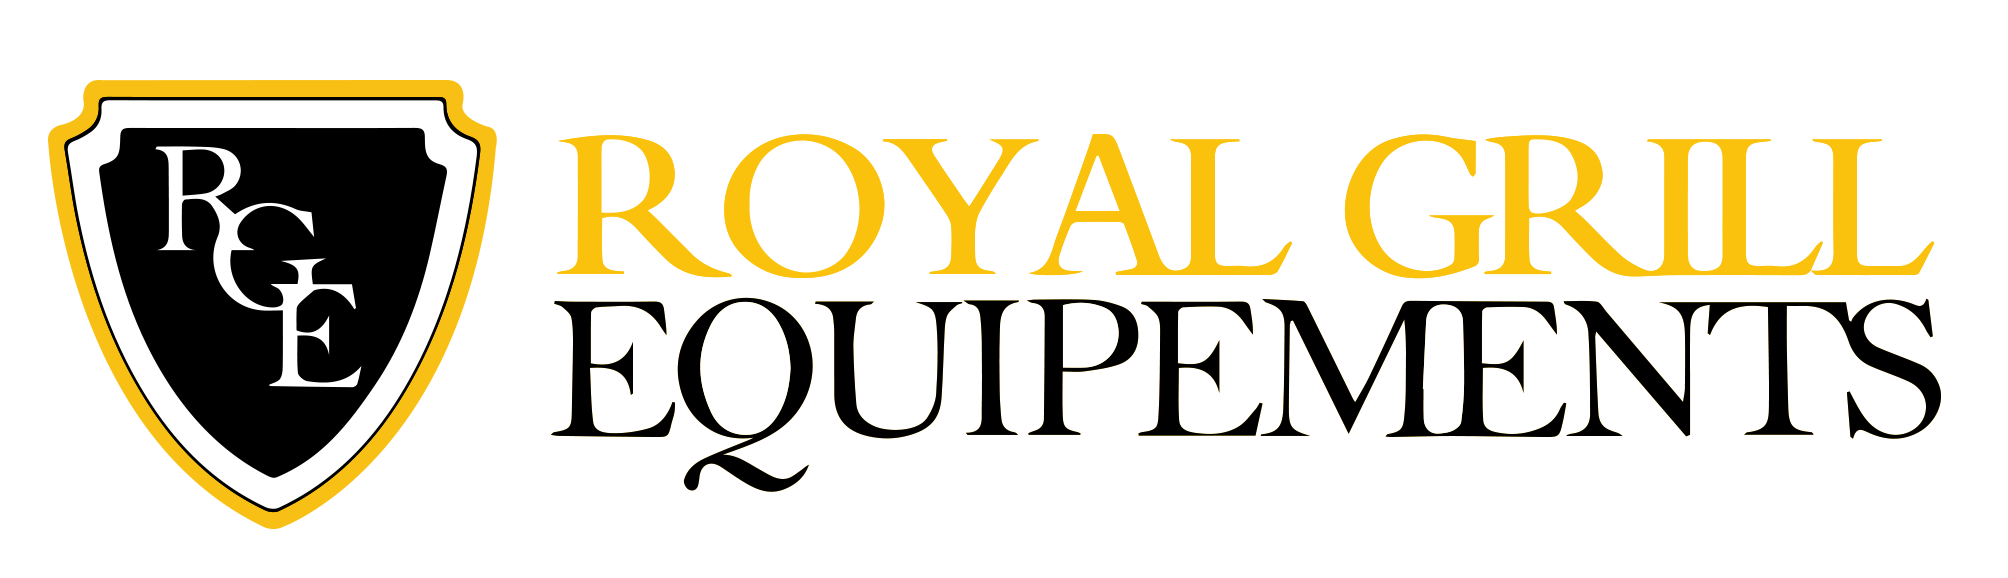 Royal Grill Equipements